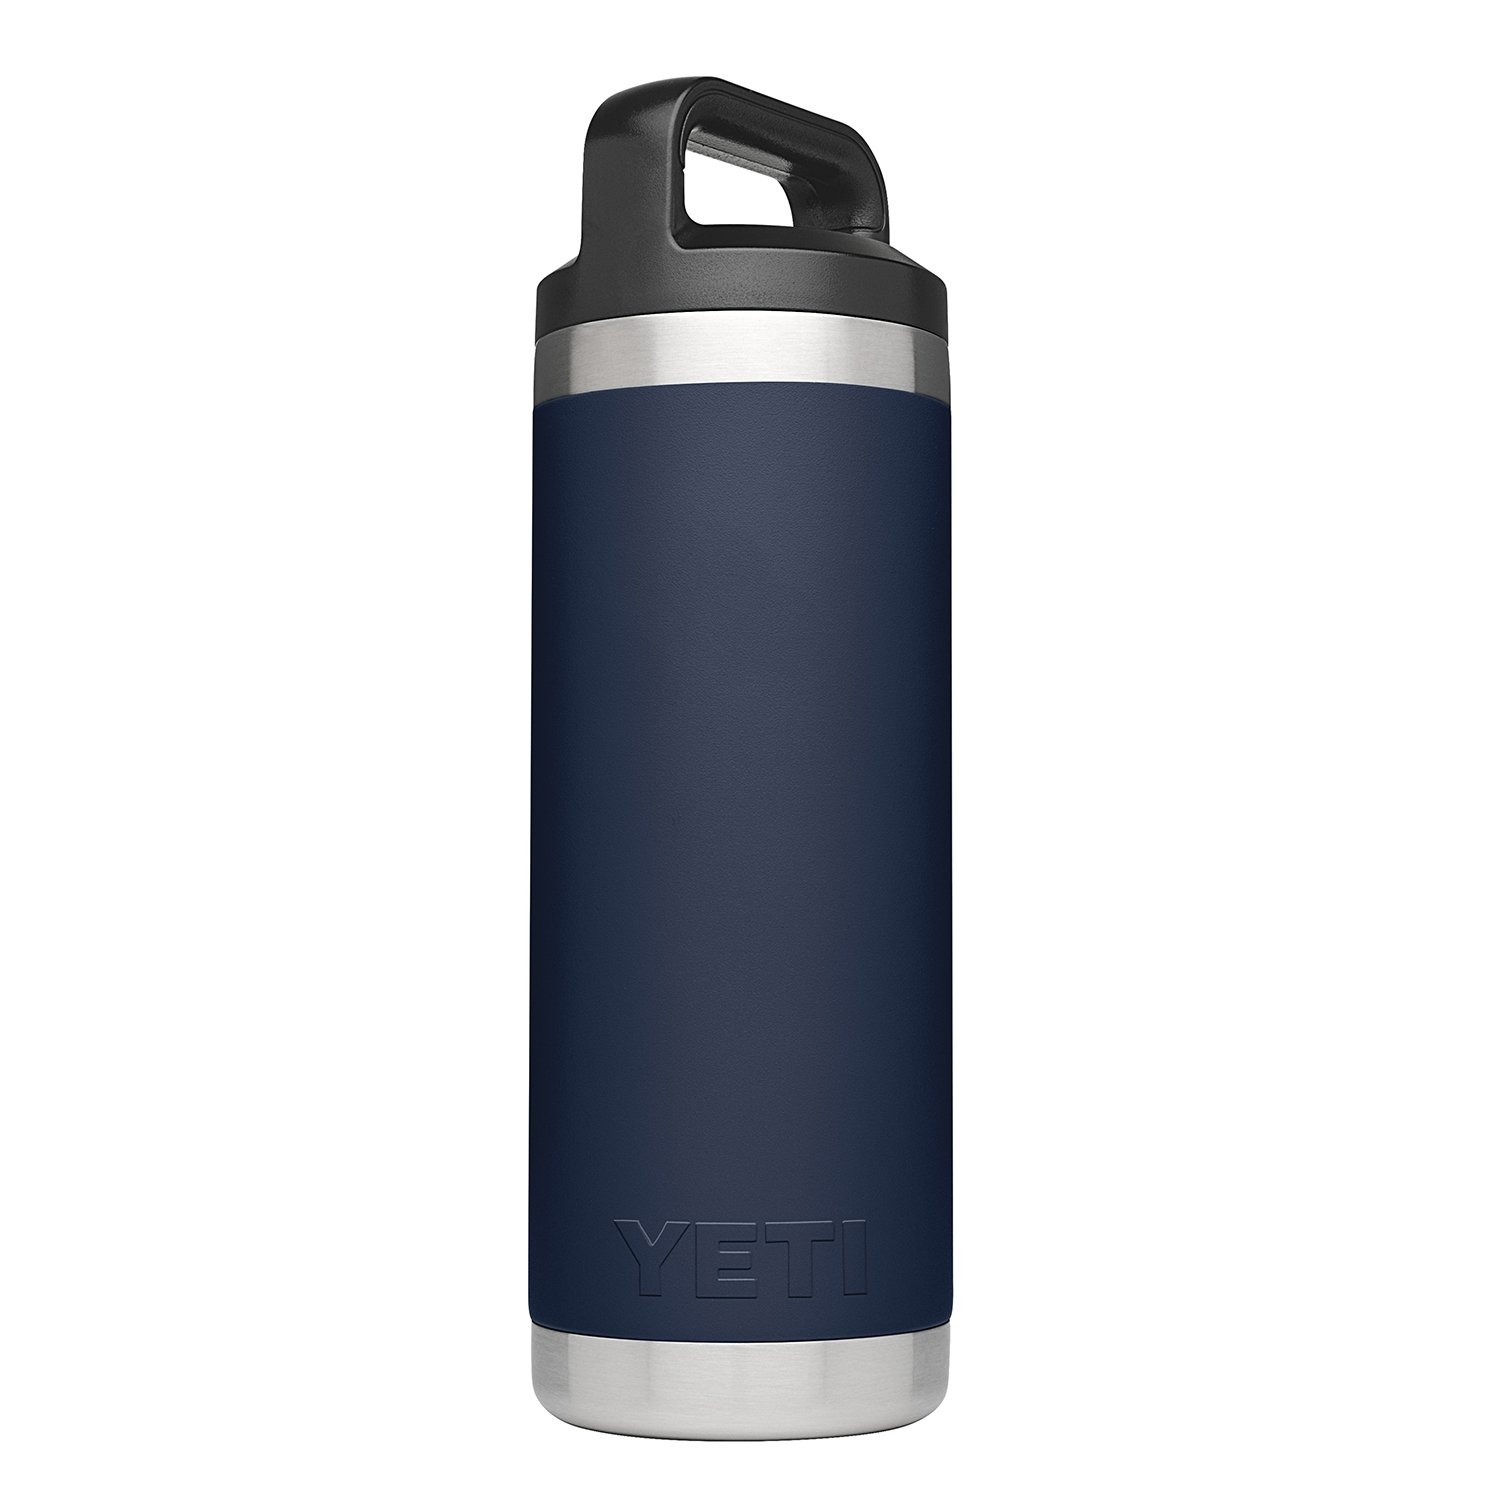 YETI Rambler 18 oz Stainless Steel Vacuum Insulated Bottle with Cap, Navy by YETI (Image #2)